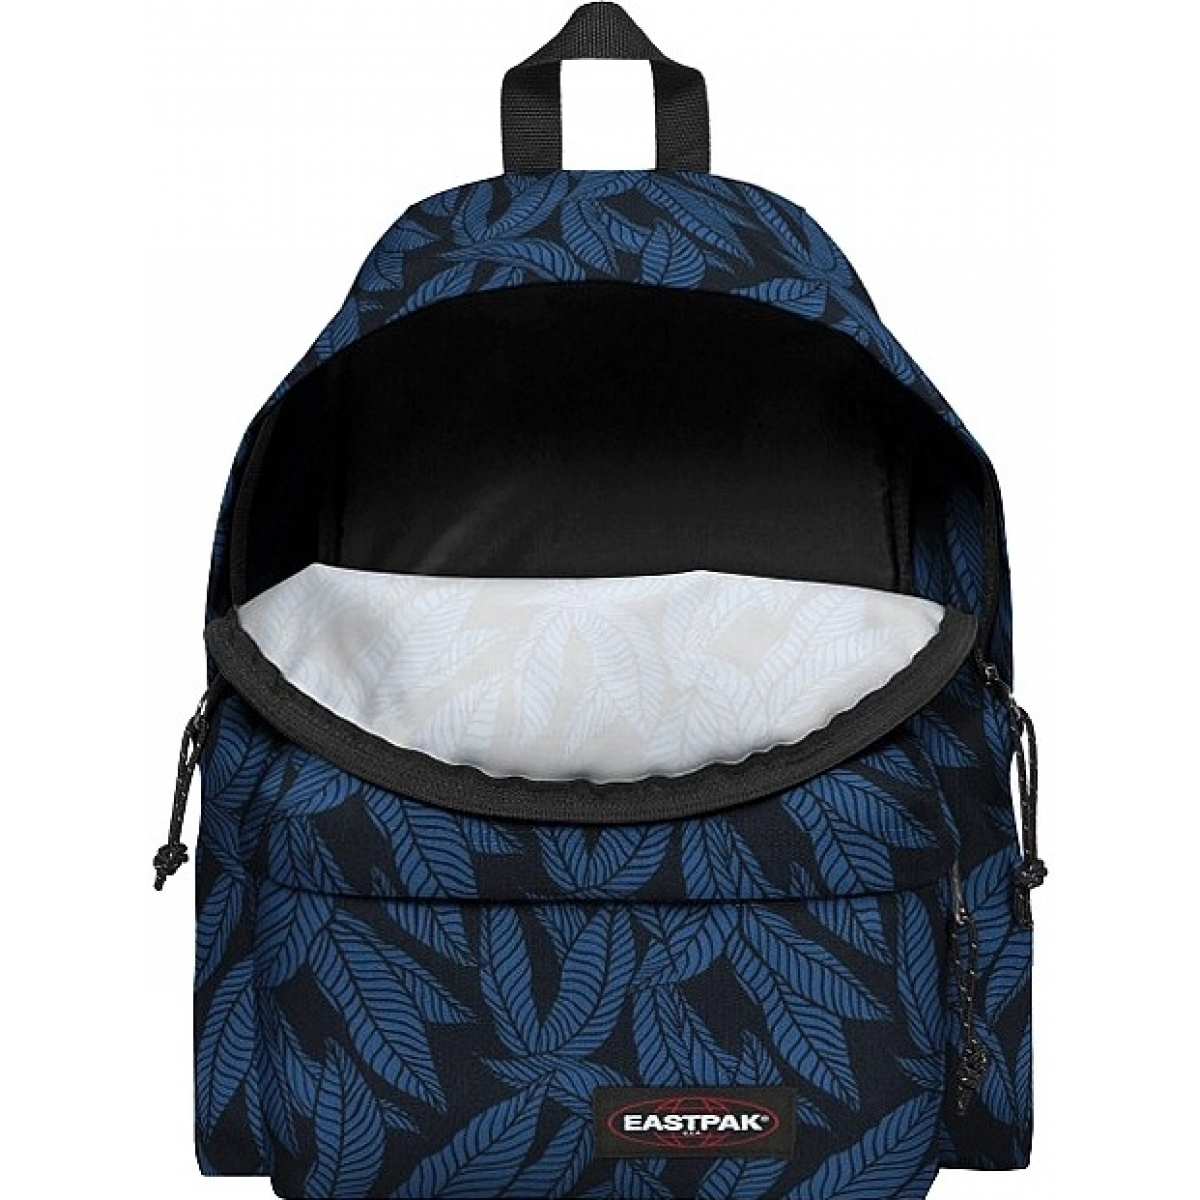 sac dos scolaire eastpak ek620 leaves blue ek62043t couleur assortis. Black Bedroom Furniture Sets. Home Design Ideas